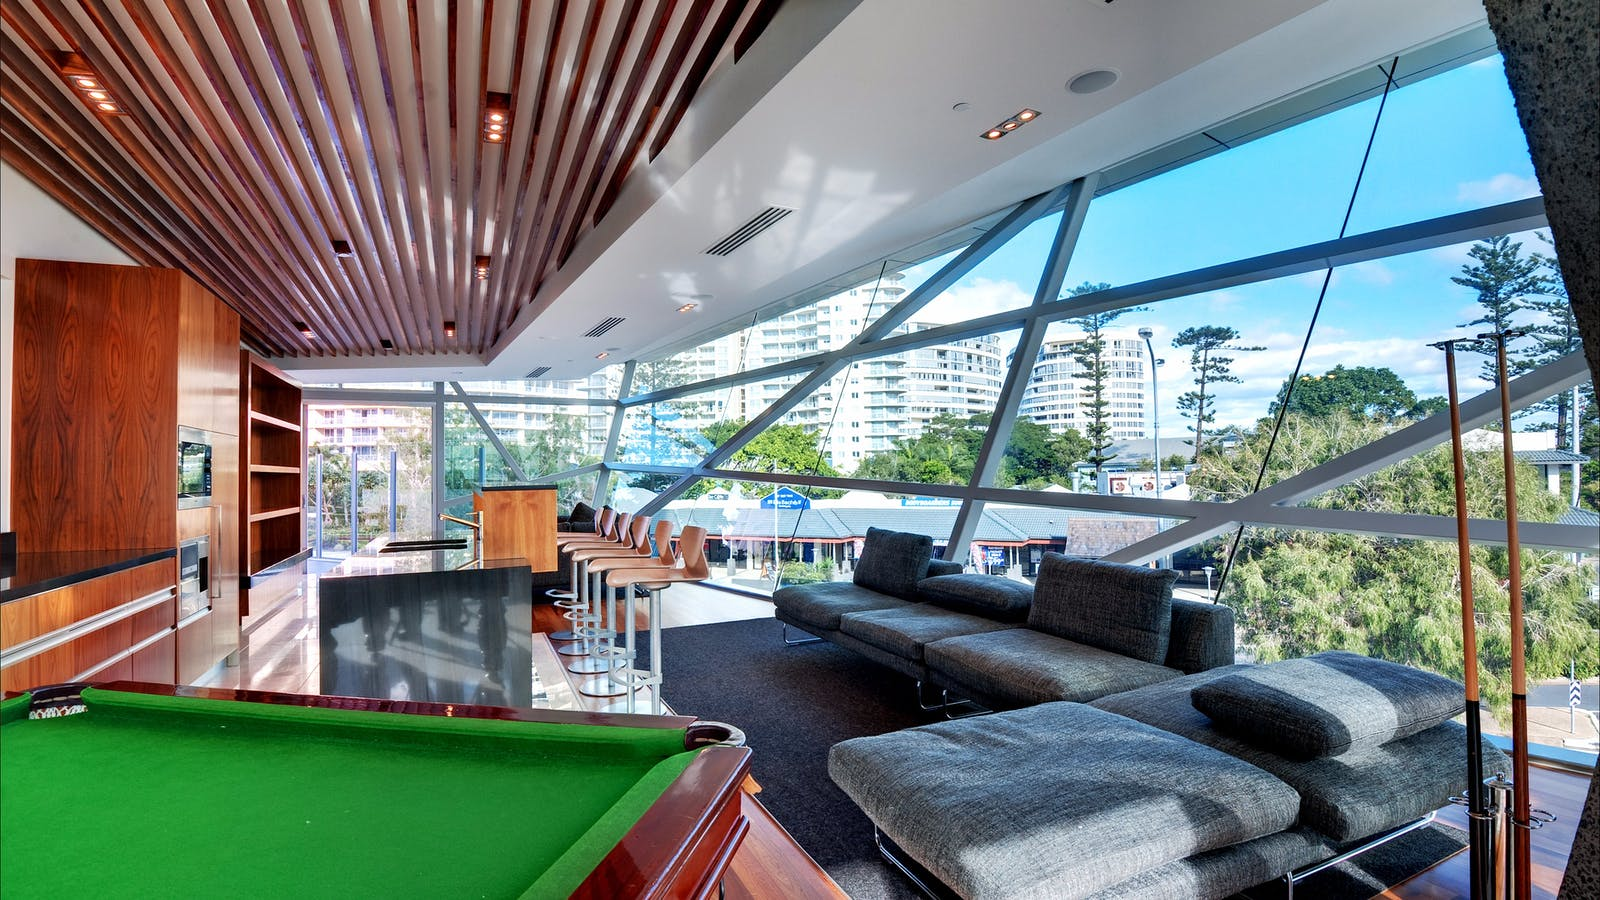 Executive Lounge with Pool Table